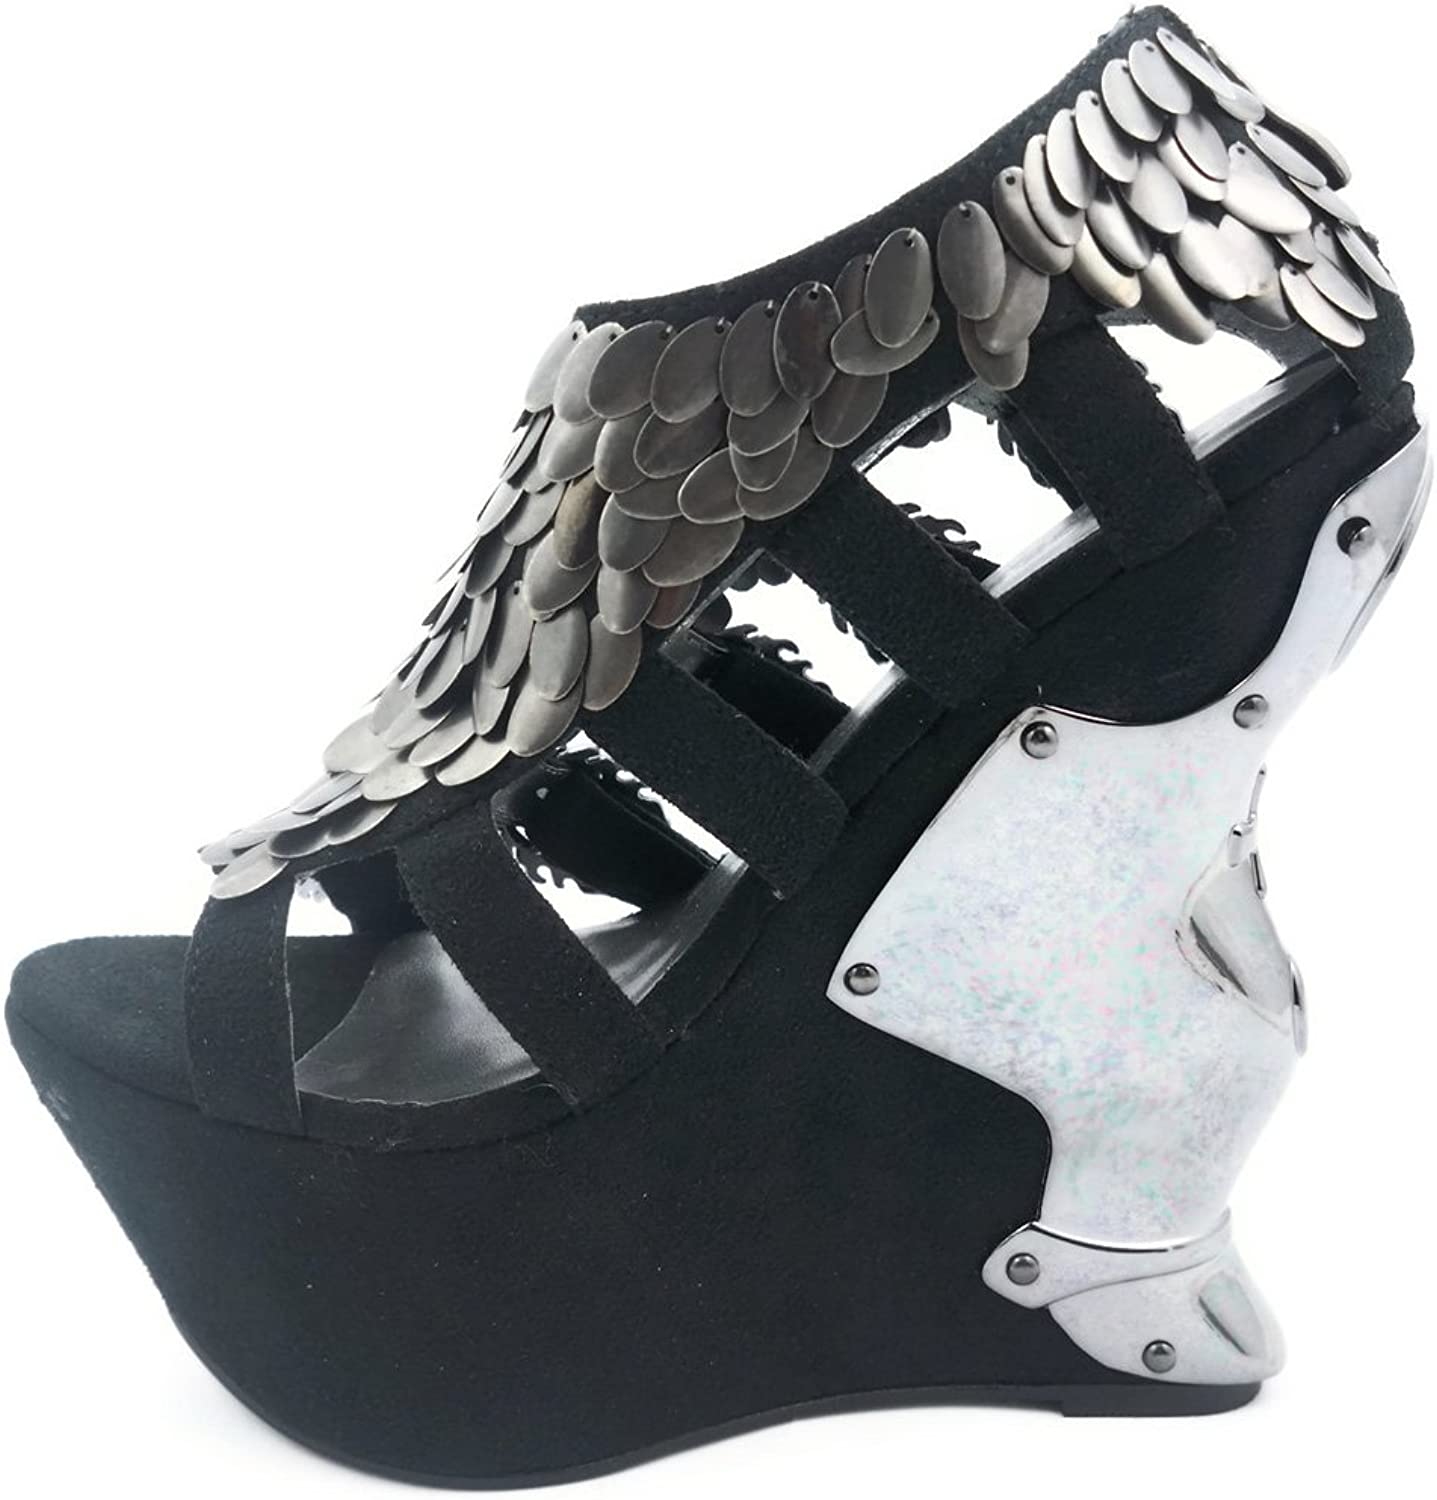 Hades shoes H-Monique 6  Sandal 2  suede platform w  Egyptian princess scales 9 Black